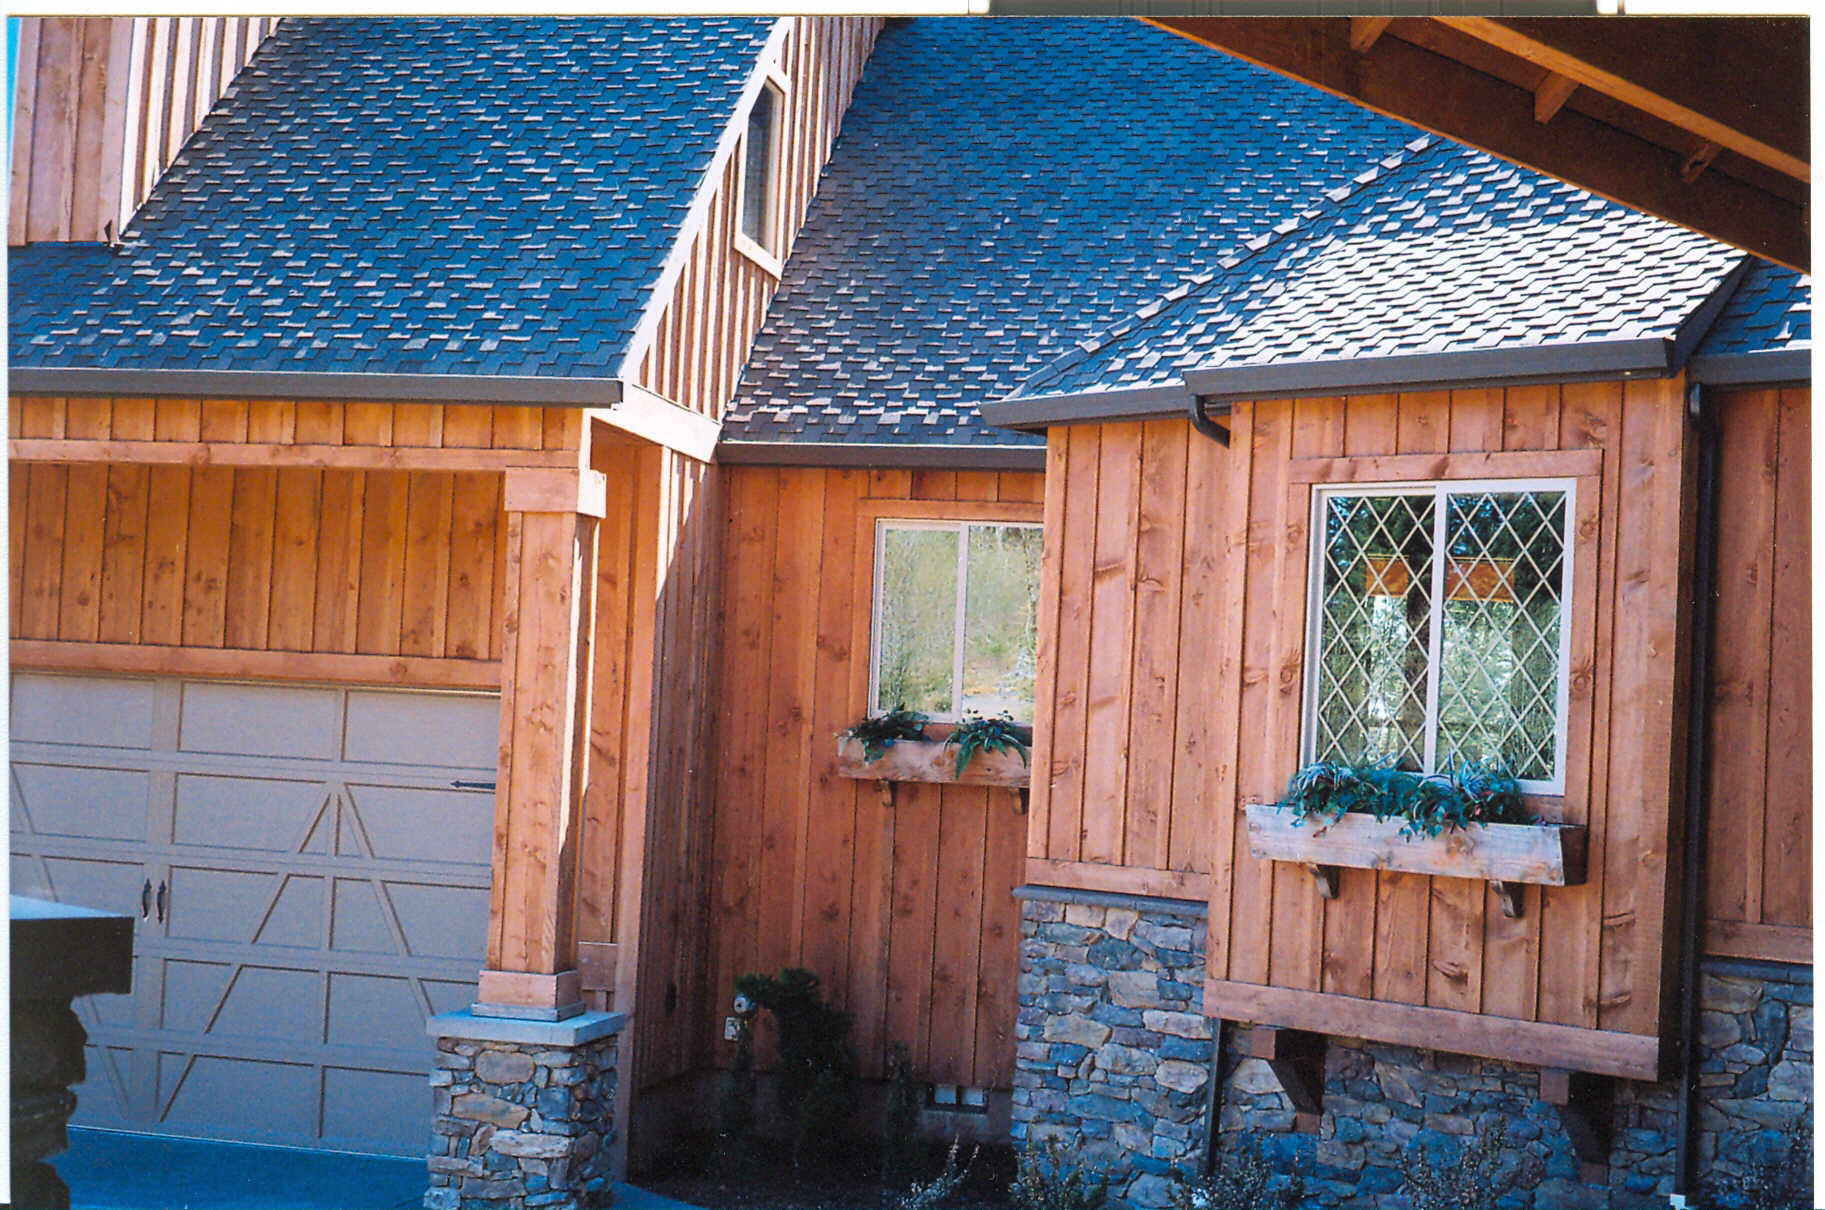 Comely Click Larger Image All Types Vertical Wood Siding Details Vertical Wood Siding Repair This Siding Project Real Wood Siding houzz-02 Vertical Wood Siding